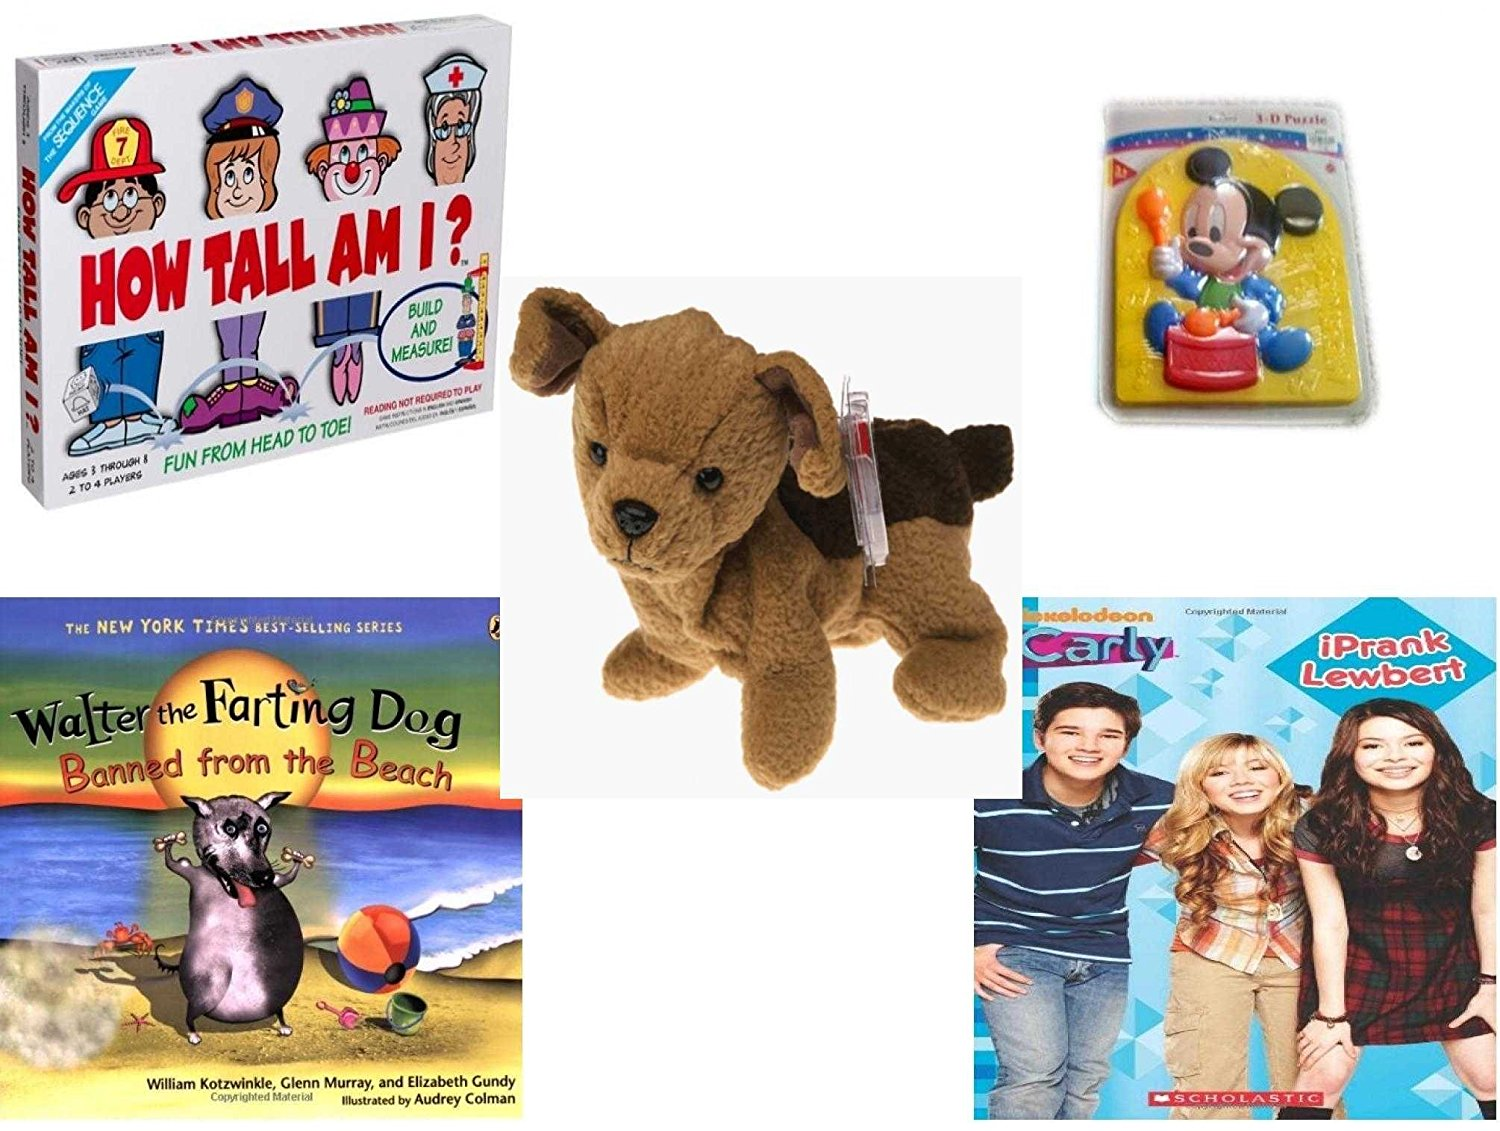 1c266b62205 Buy Childrens Gift Bundle - Ages 3-5  5 Piece  - How Tall Am I  Game ...